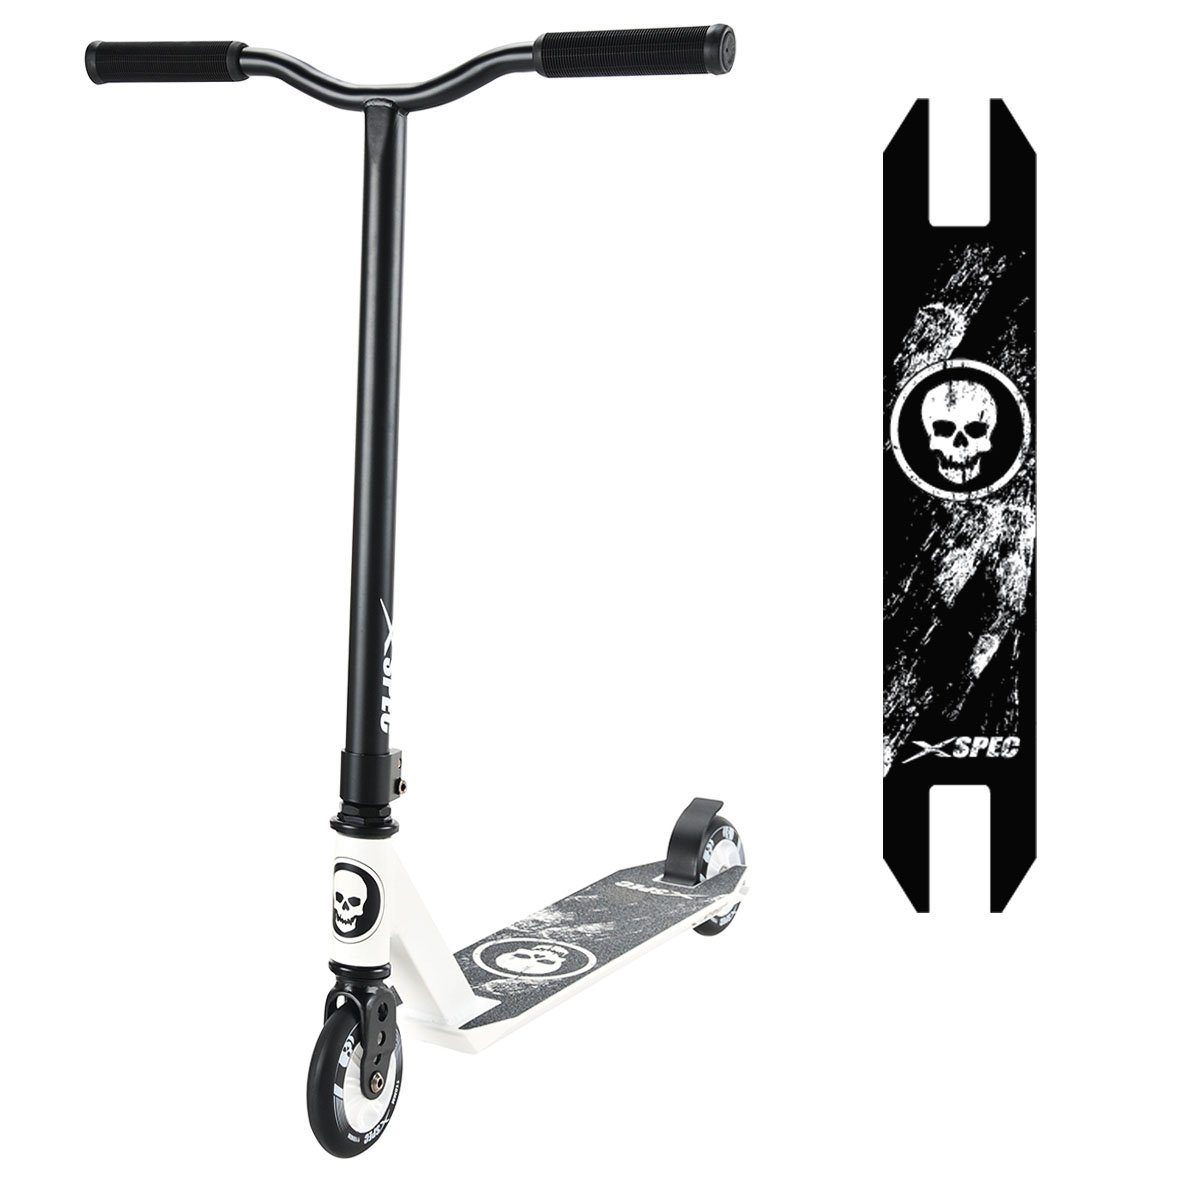 Xspec Pro Stunt Kick Scooter w/Strong Aluminum Deck, White & Black w/Skulls by Xspec